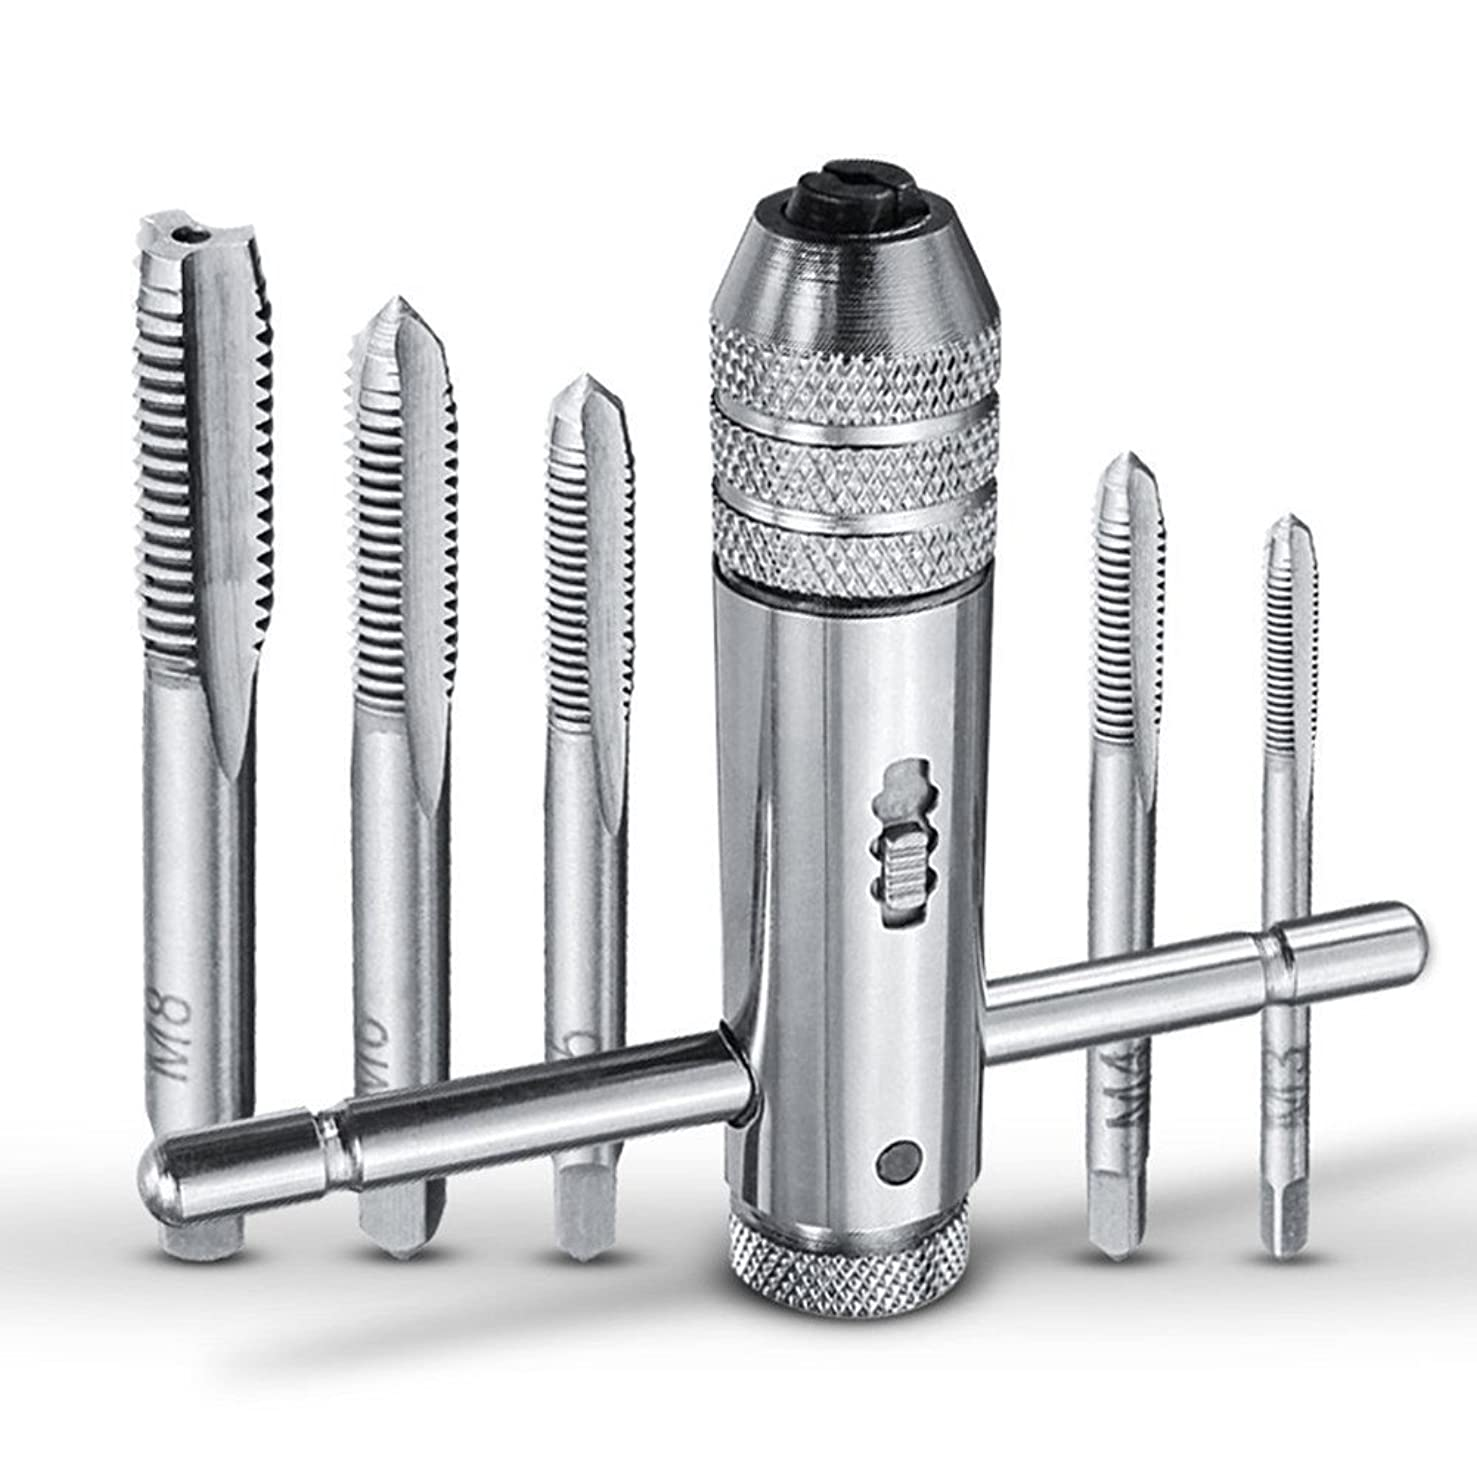 IBEUTES Adjustable T-Handle Ratchet Tap Holder Wrench Tapping Threading Tool Set with 5pcs M3-M8 3mm-8mm Machine Screw Thread Metric Plug T-shaped Tap